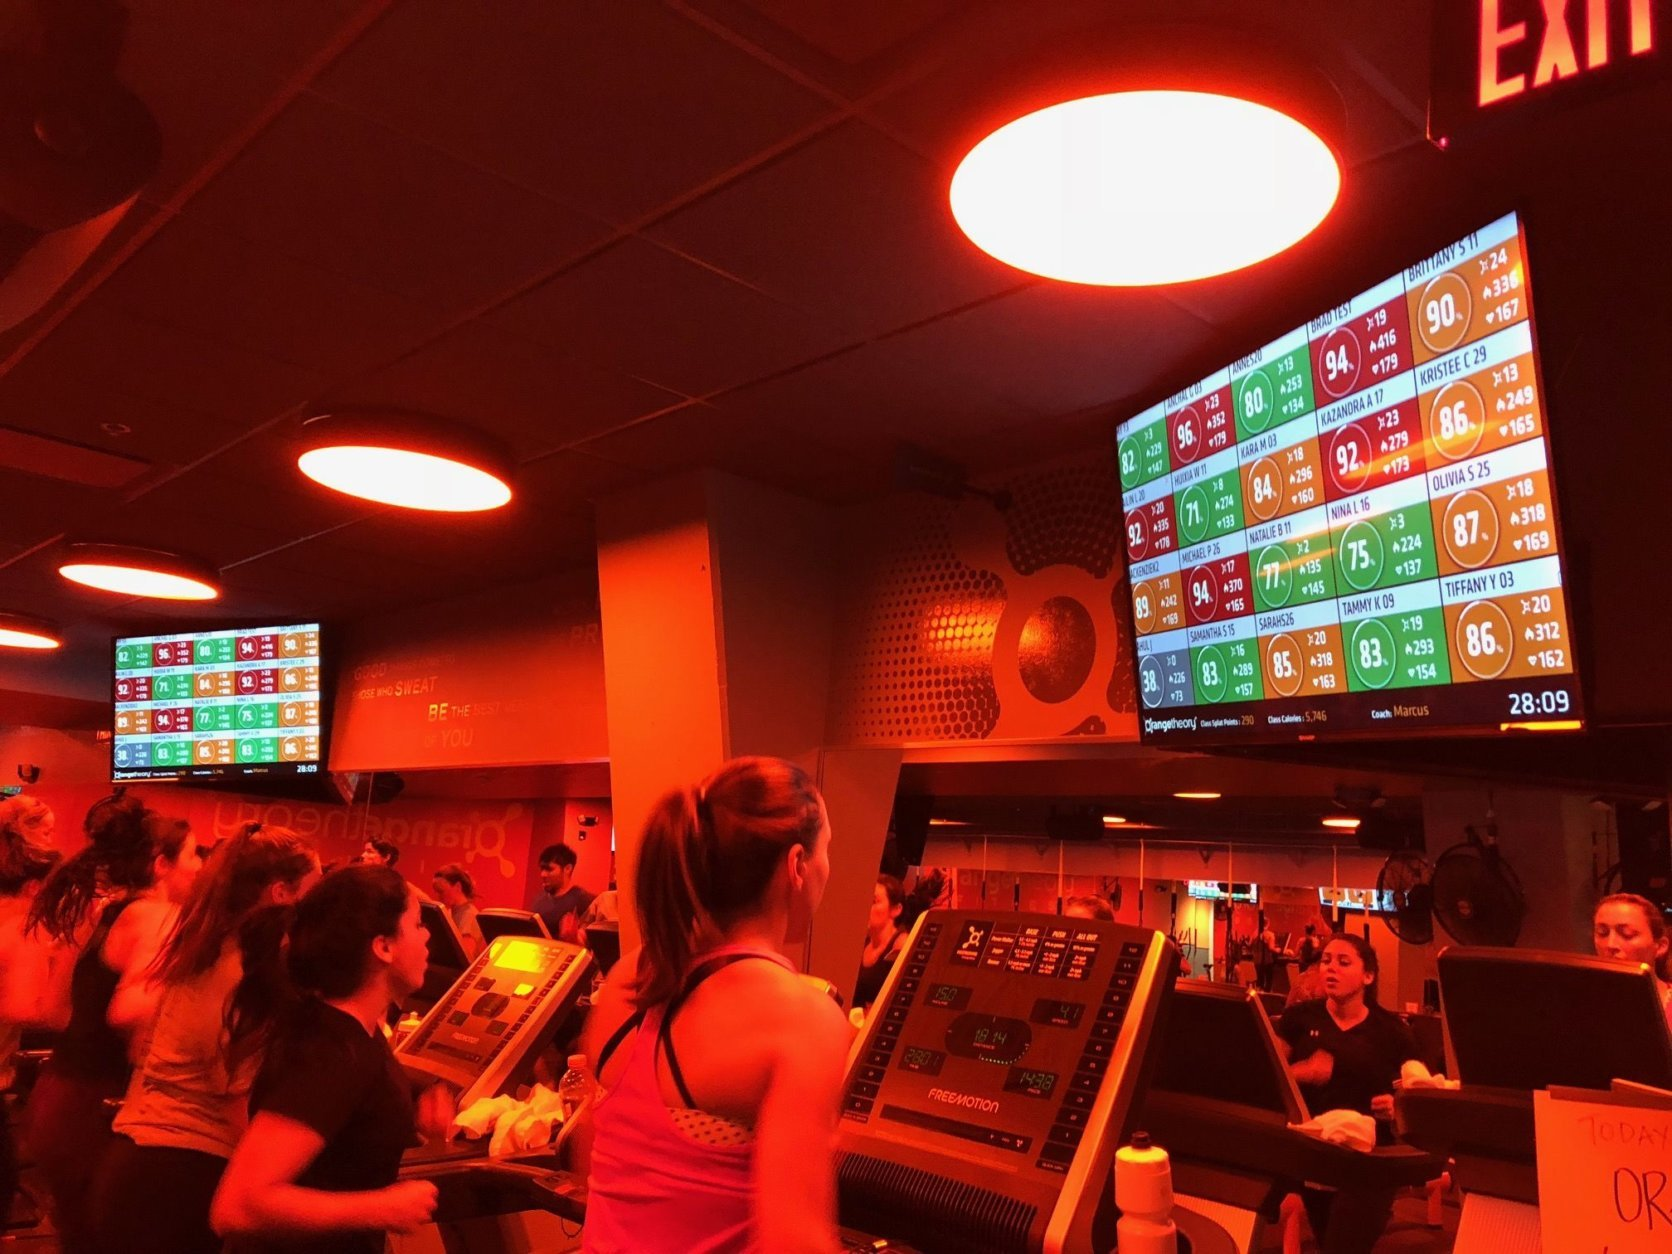 Orangetheory is known for its intense workouts. (WTOP/Dan Friedell)